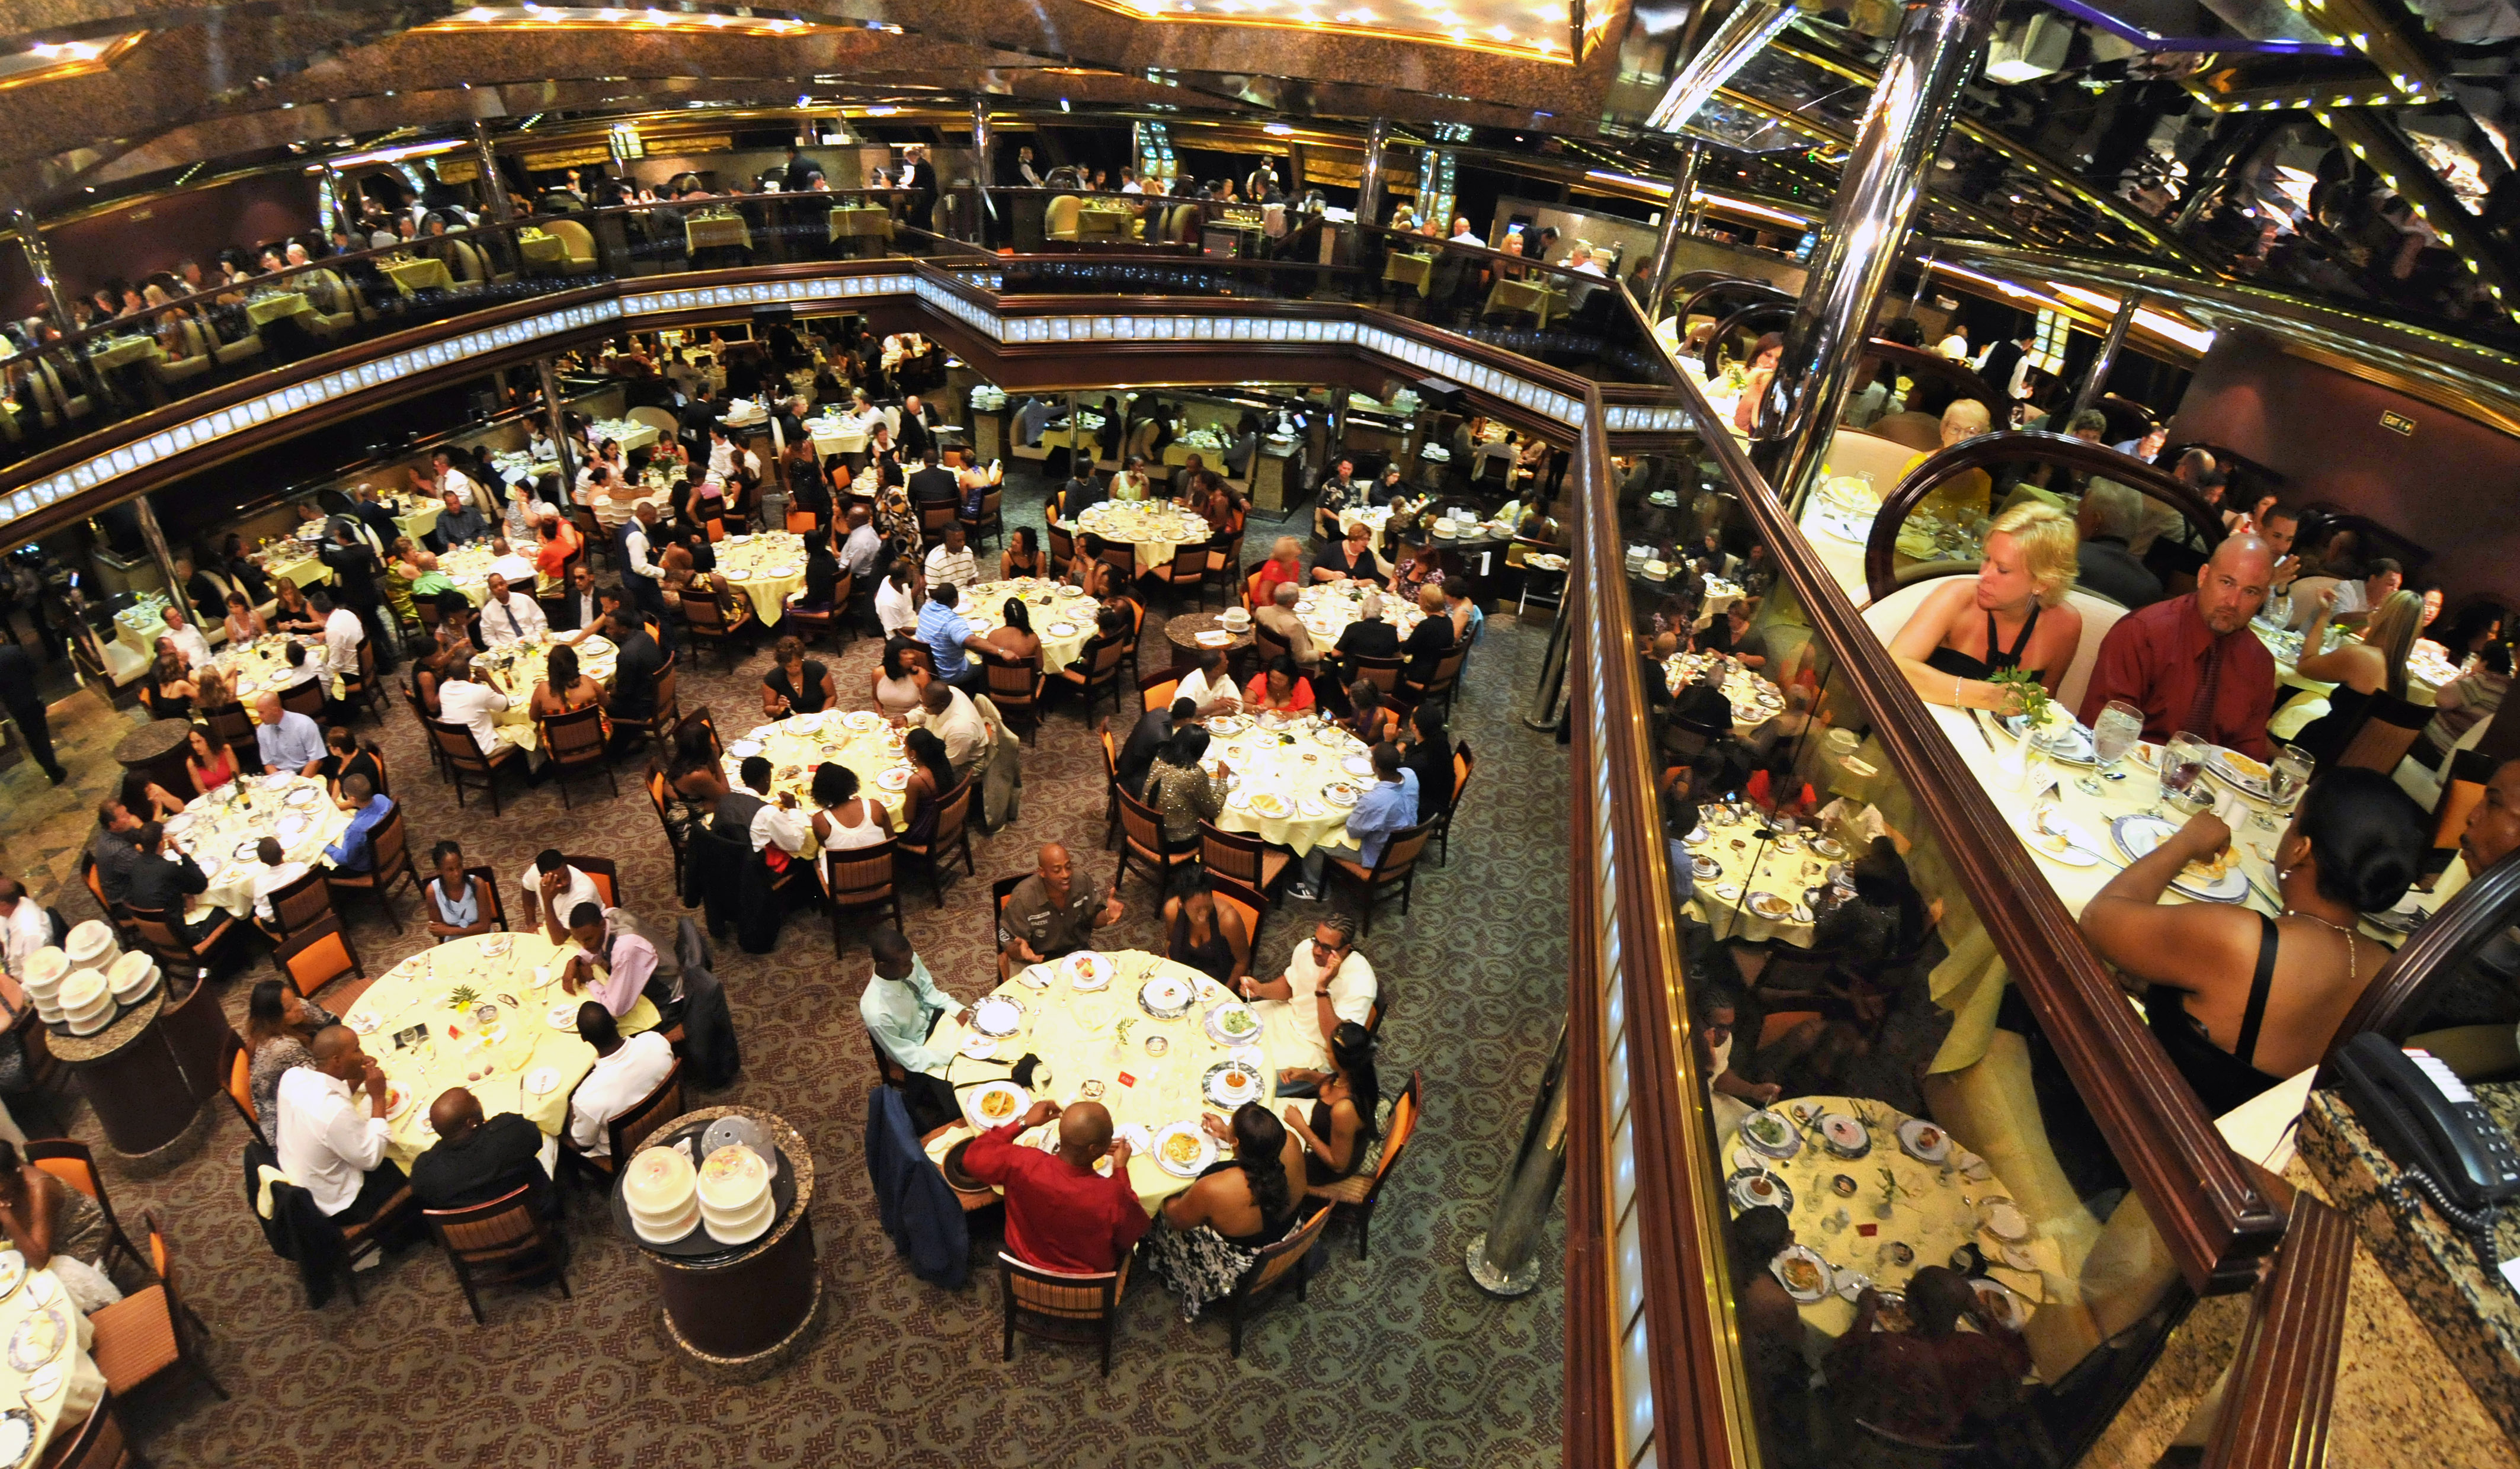 The Cruise Cafe October 2010